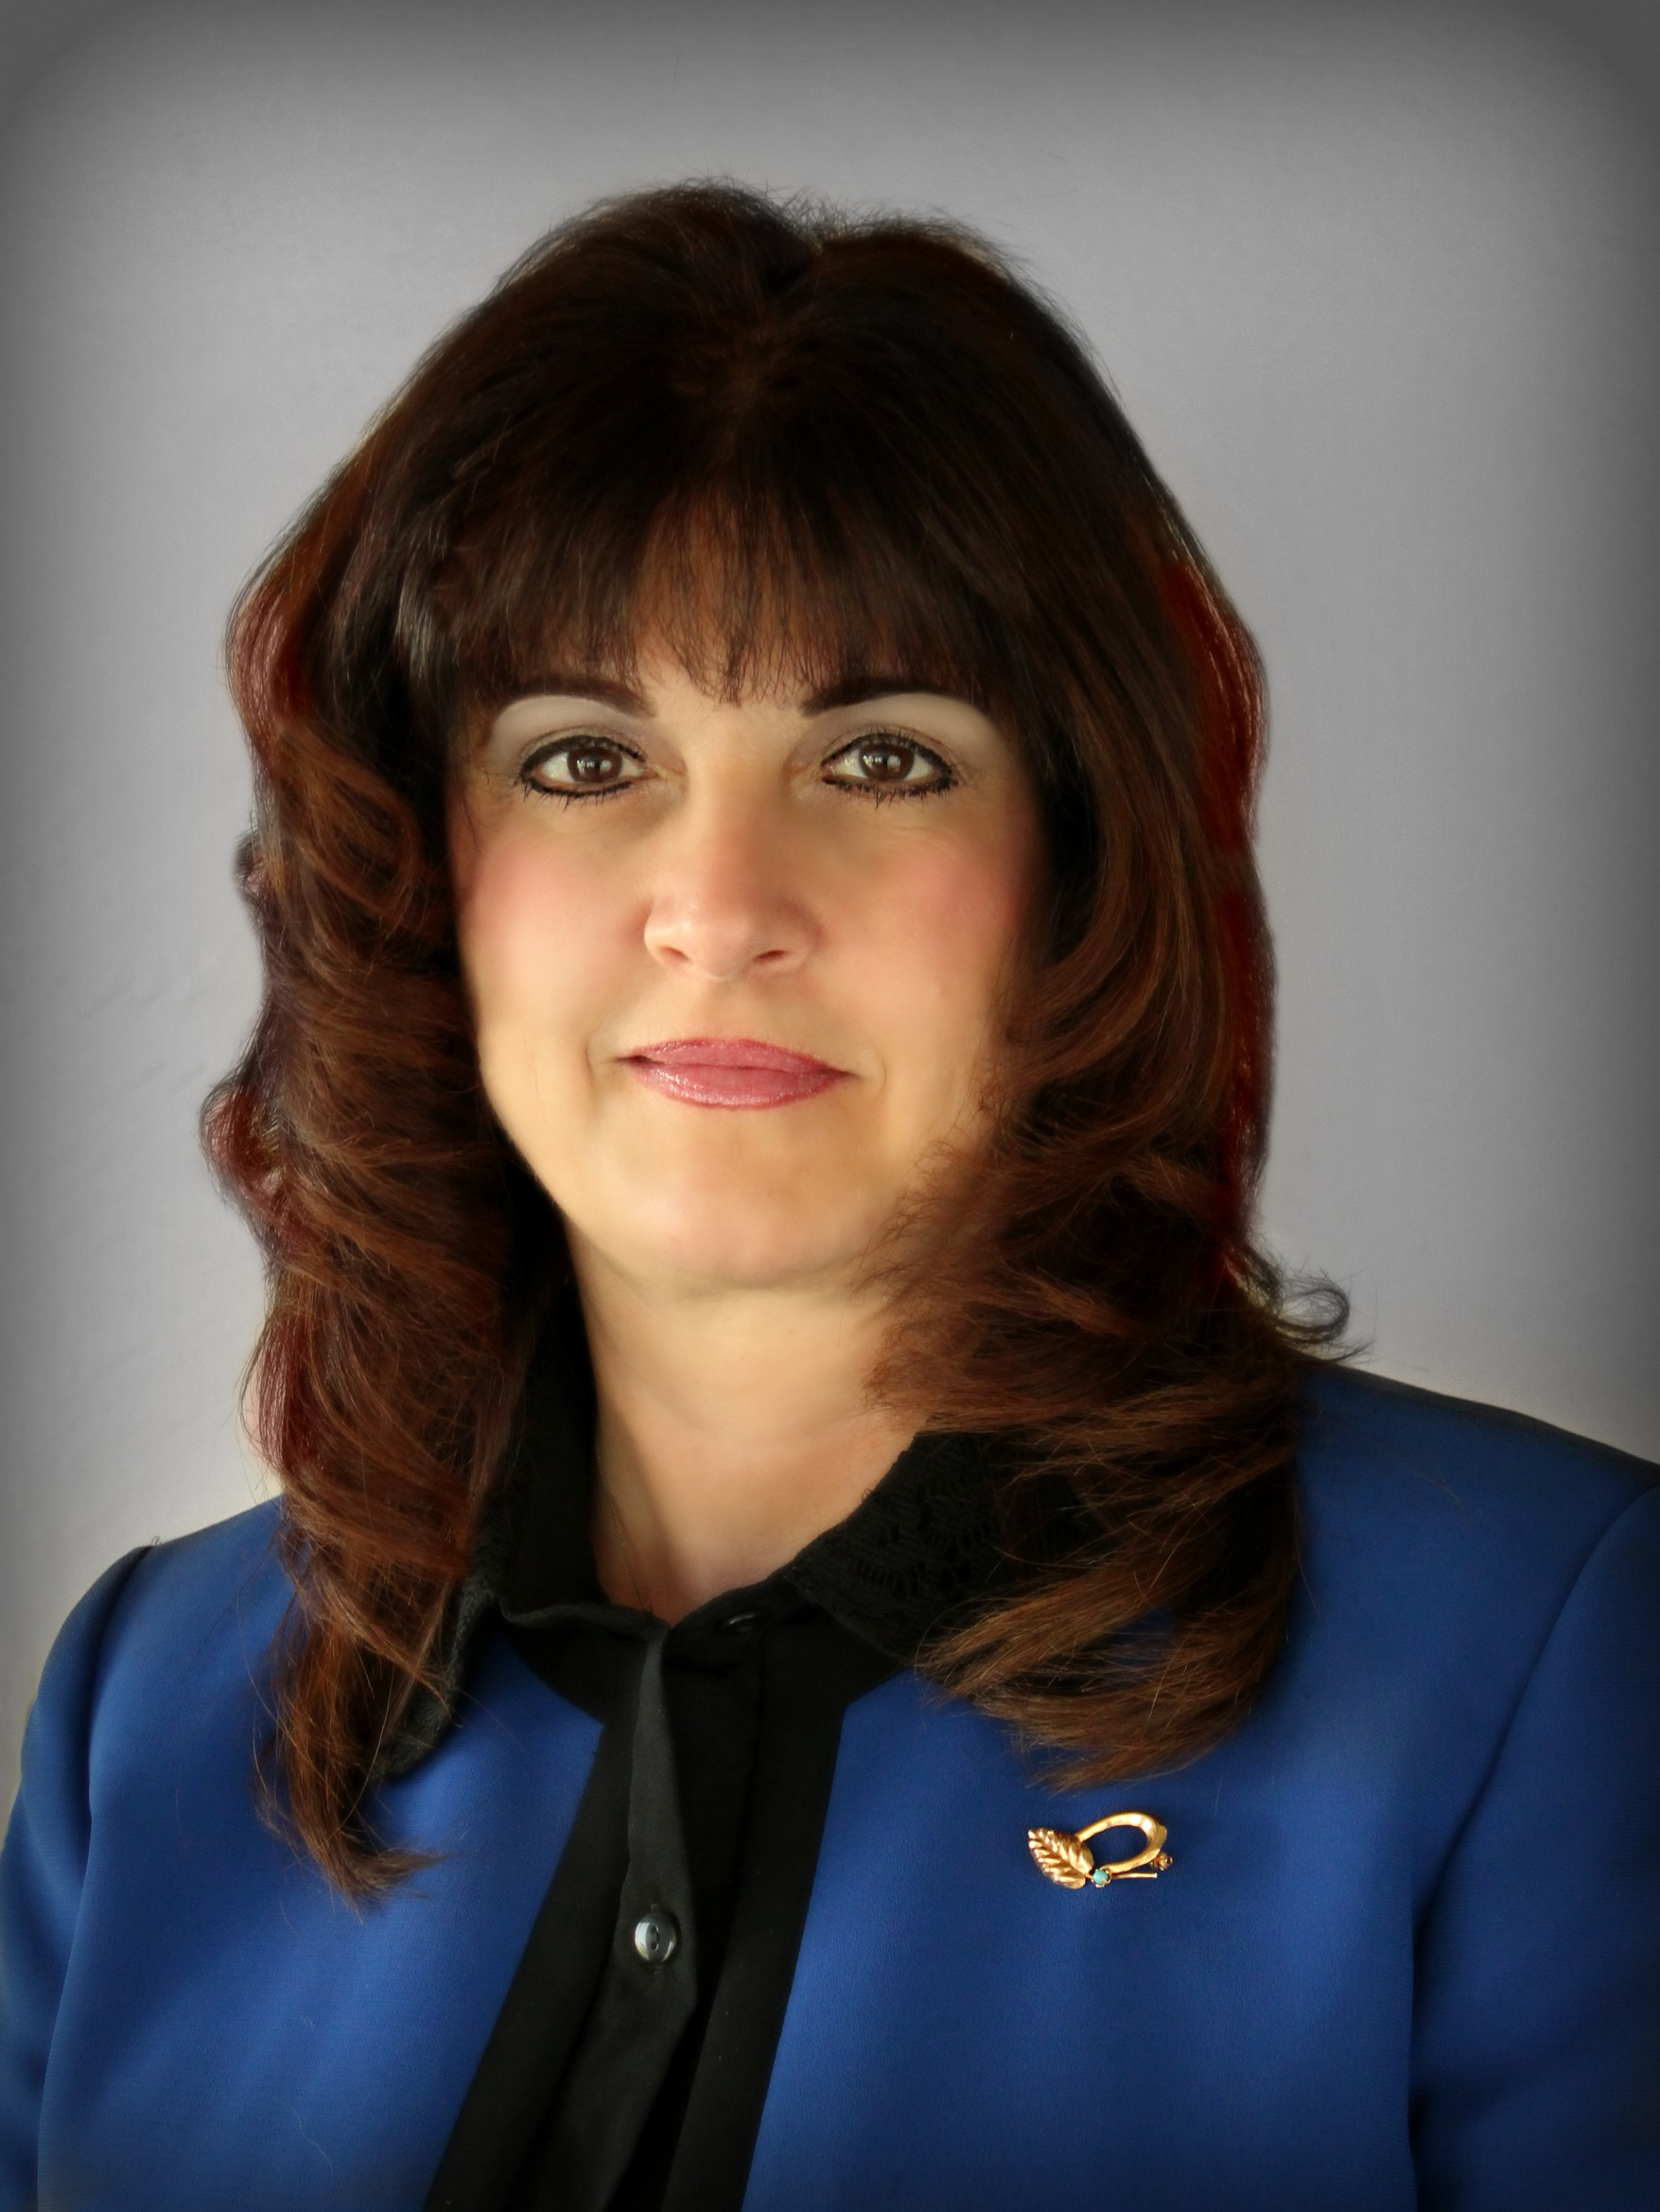 JoAnn Faiella, Mayor of Port St. Lucie